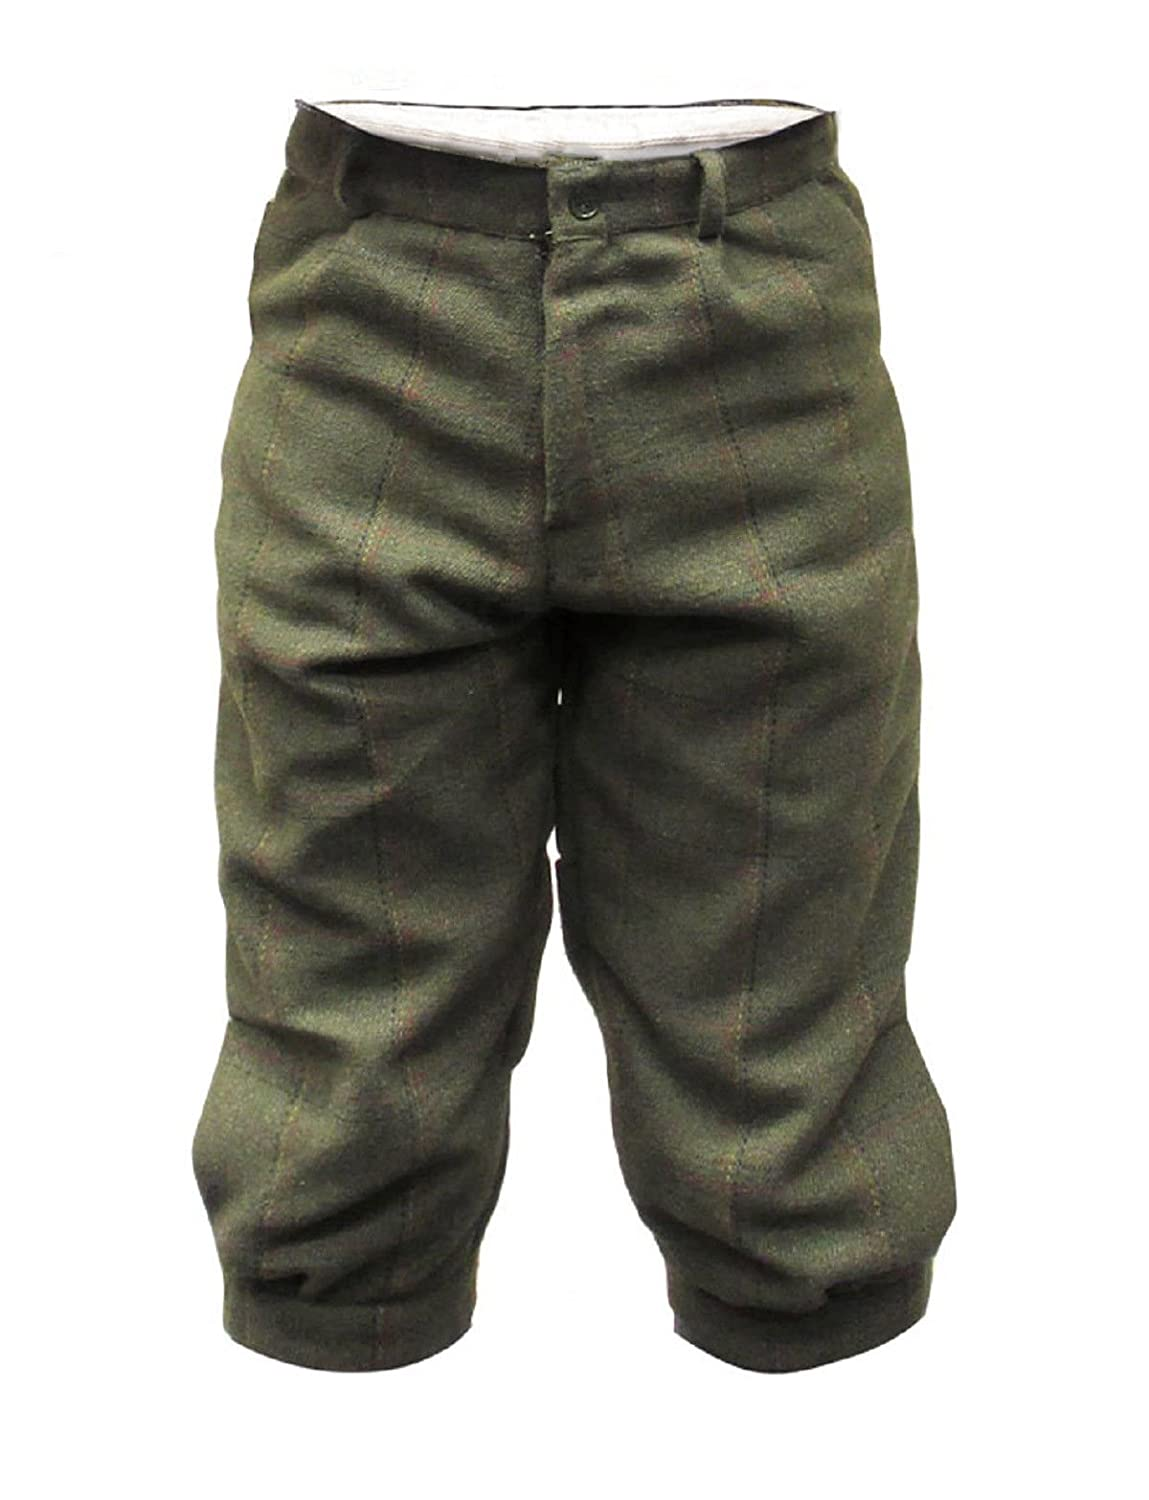 Edwardian Men's Pants, Trousers, Overalls Stormkloth Mens Hereford Tweed Breeks Trousers Breeches Hunting Shooting Fishing Field Farm $49.99 AT vintagedancer.com